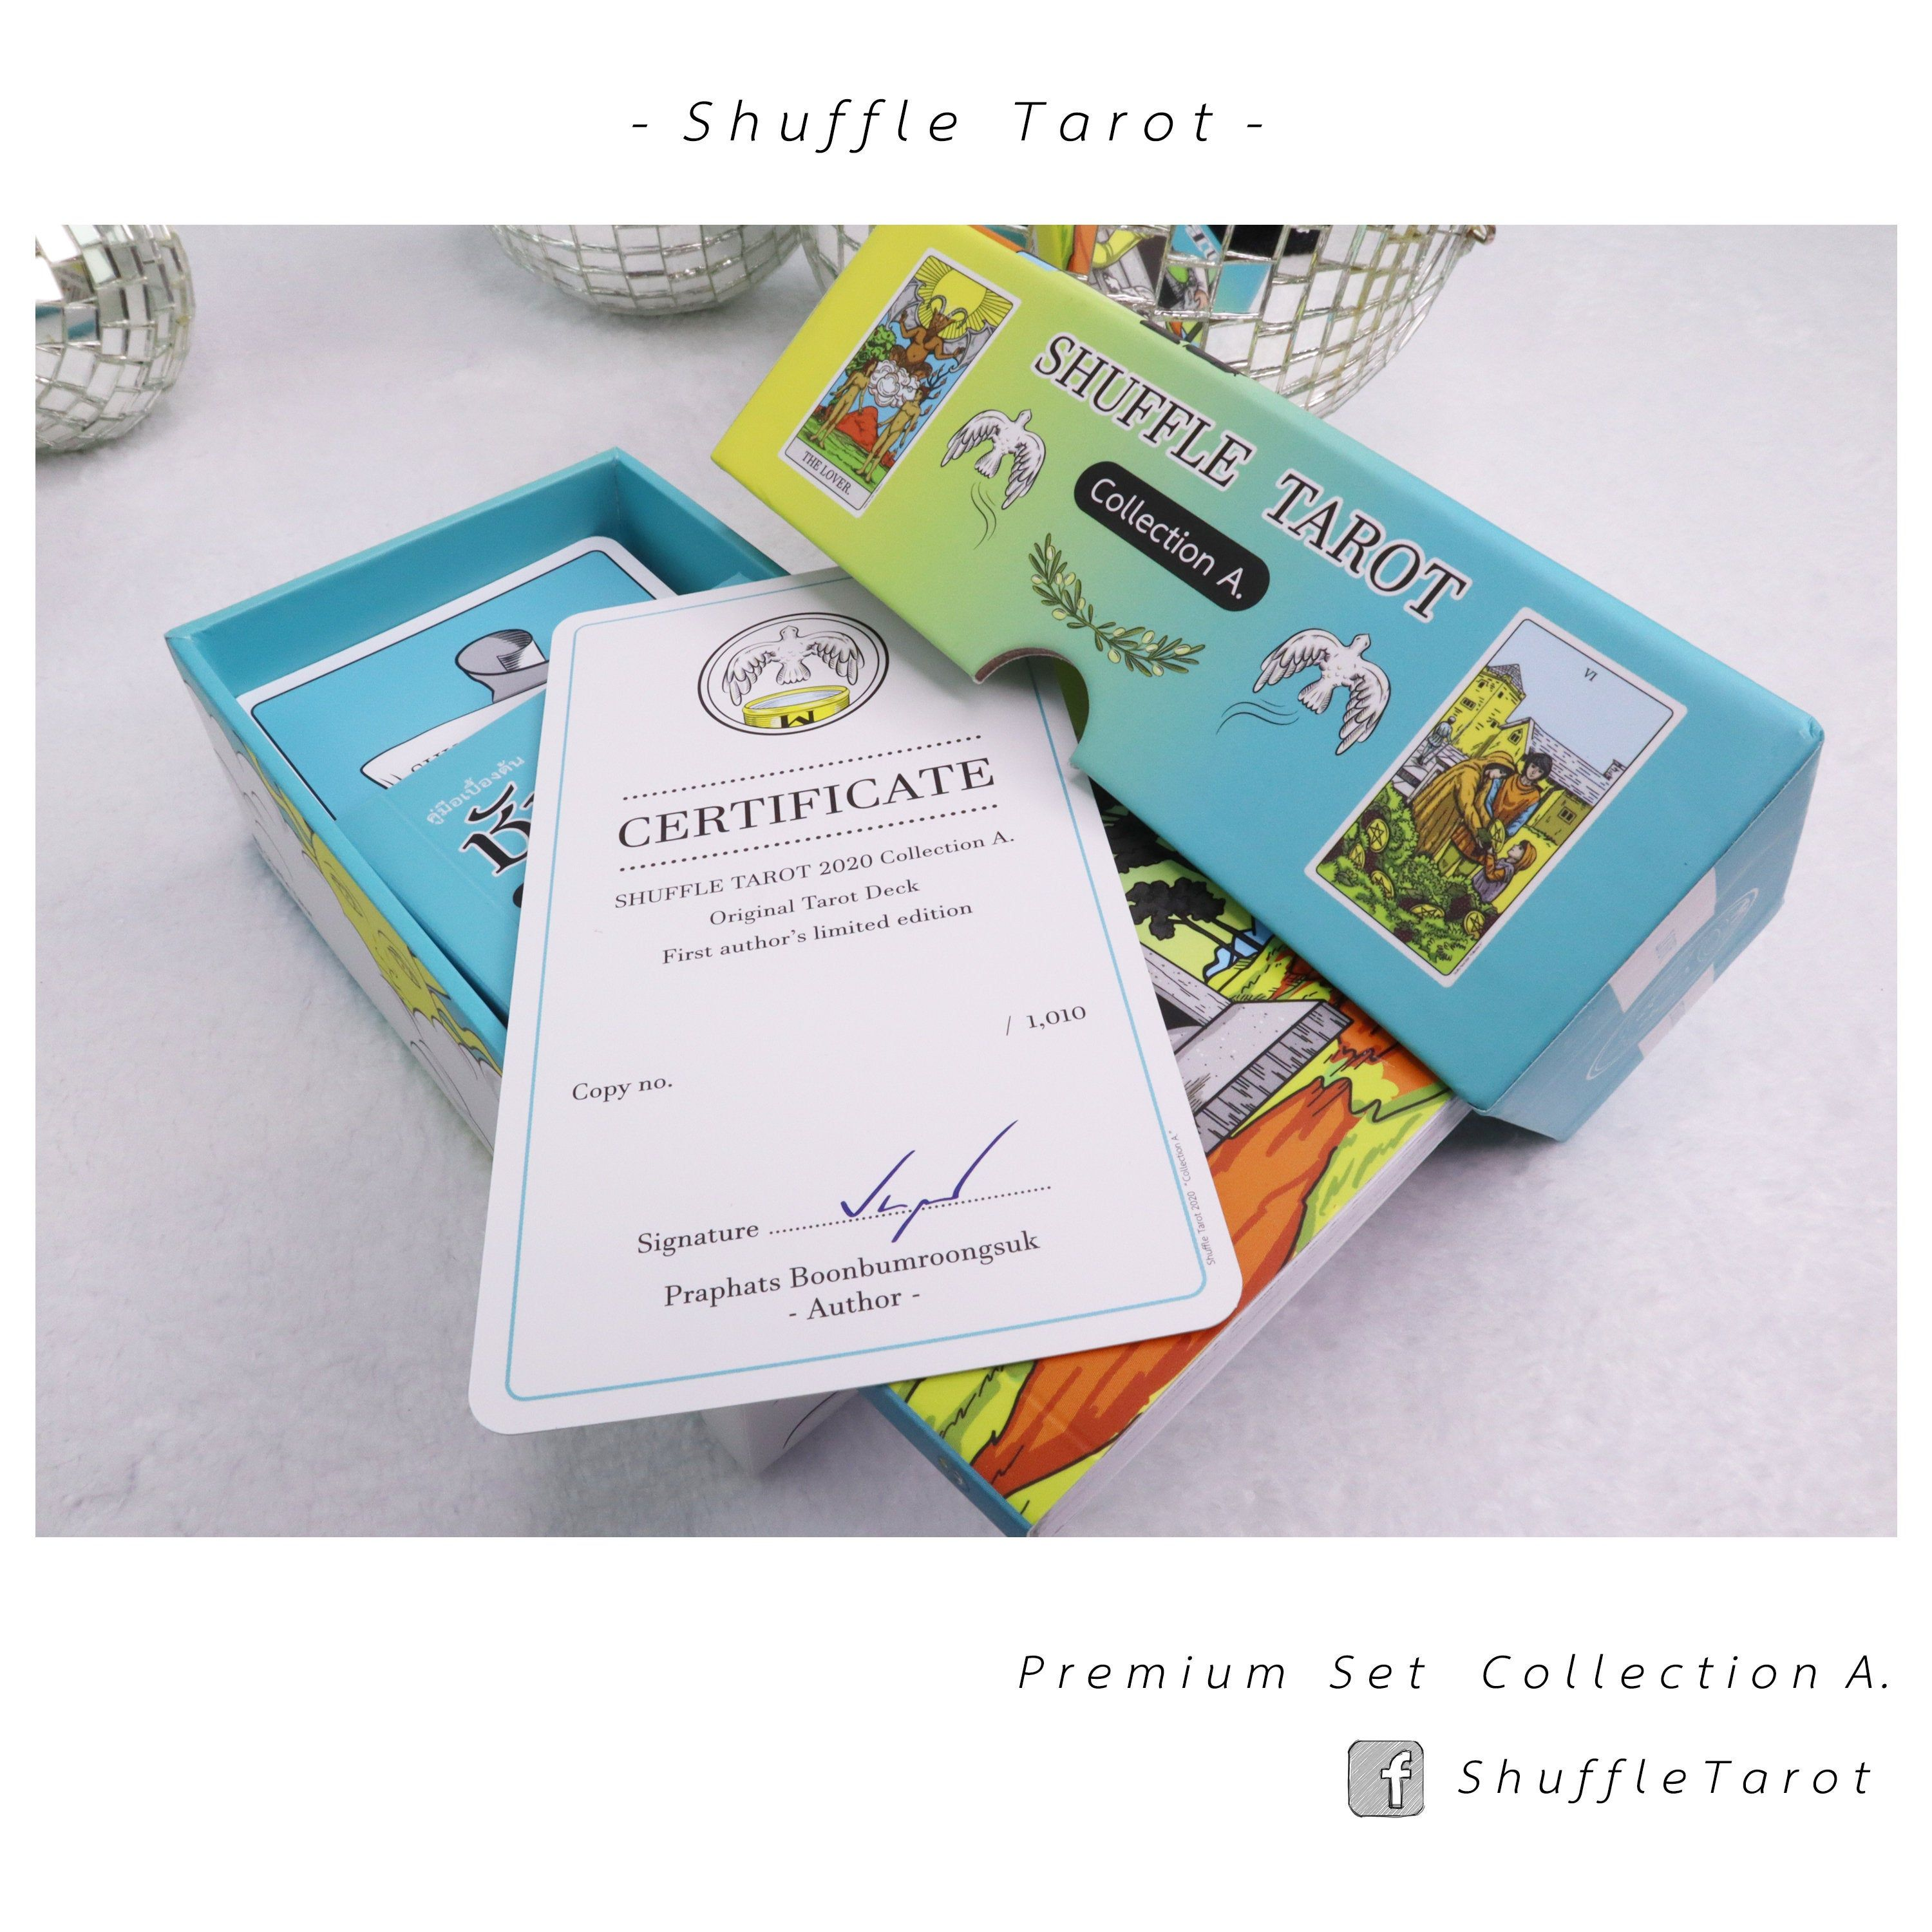 Collection a premium ver shuffle tarot deck limited